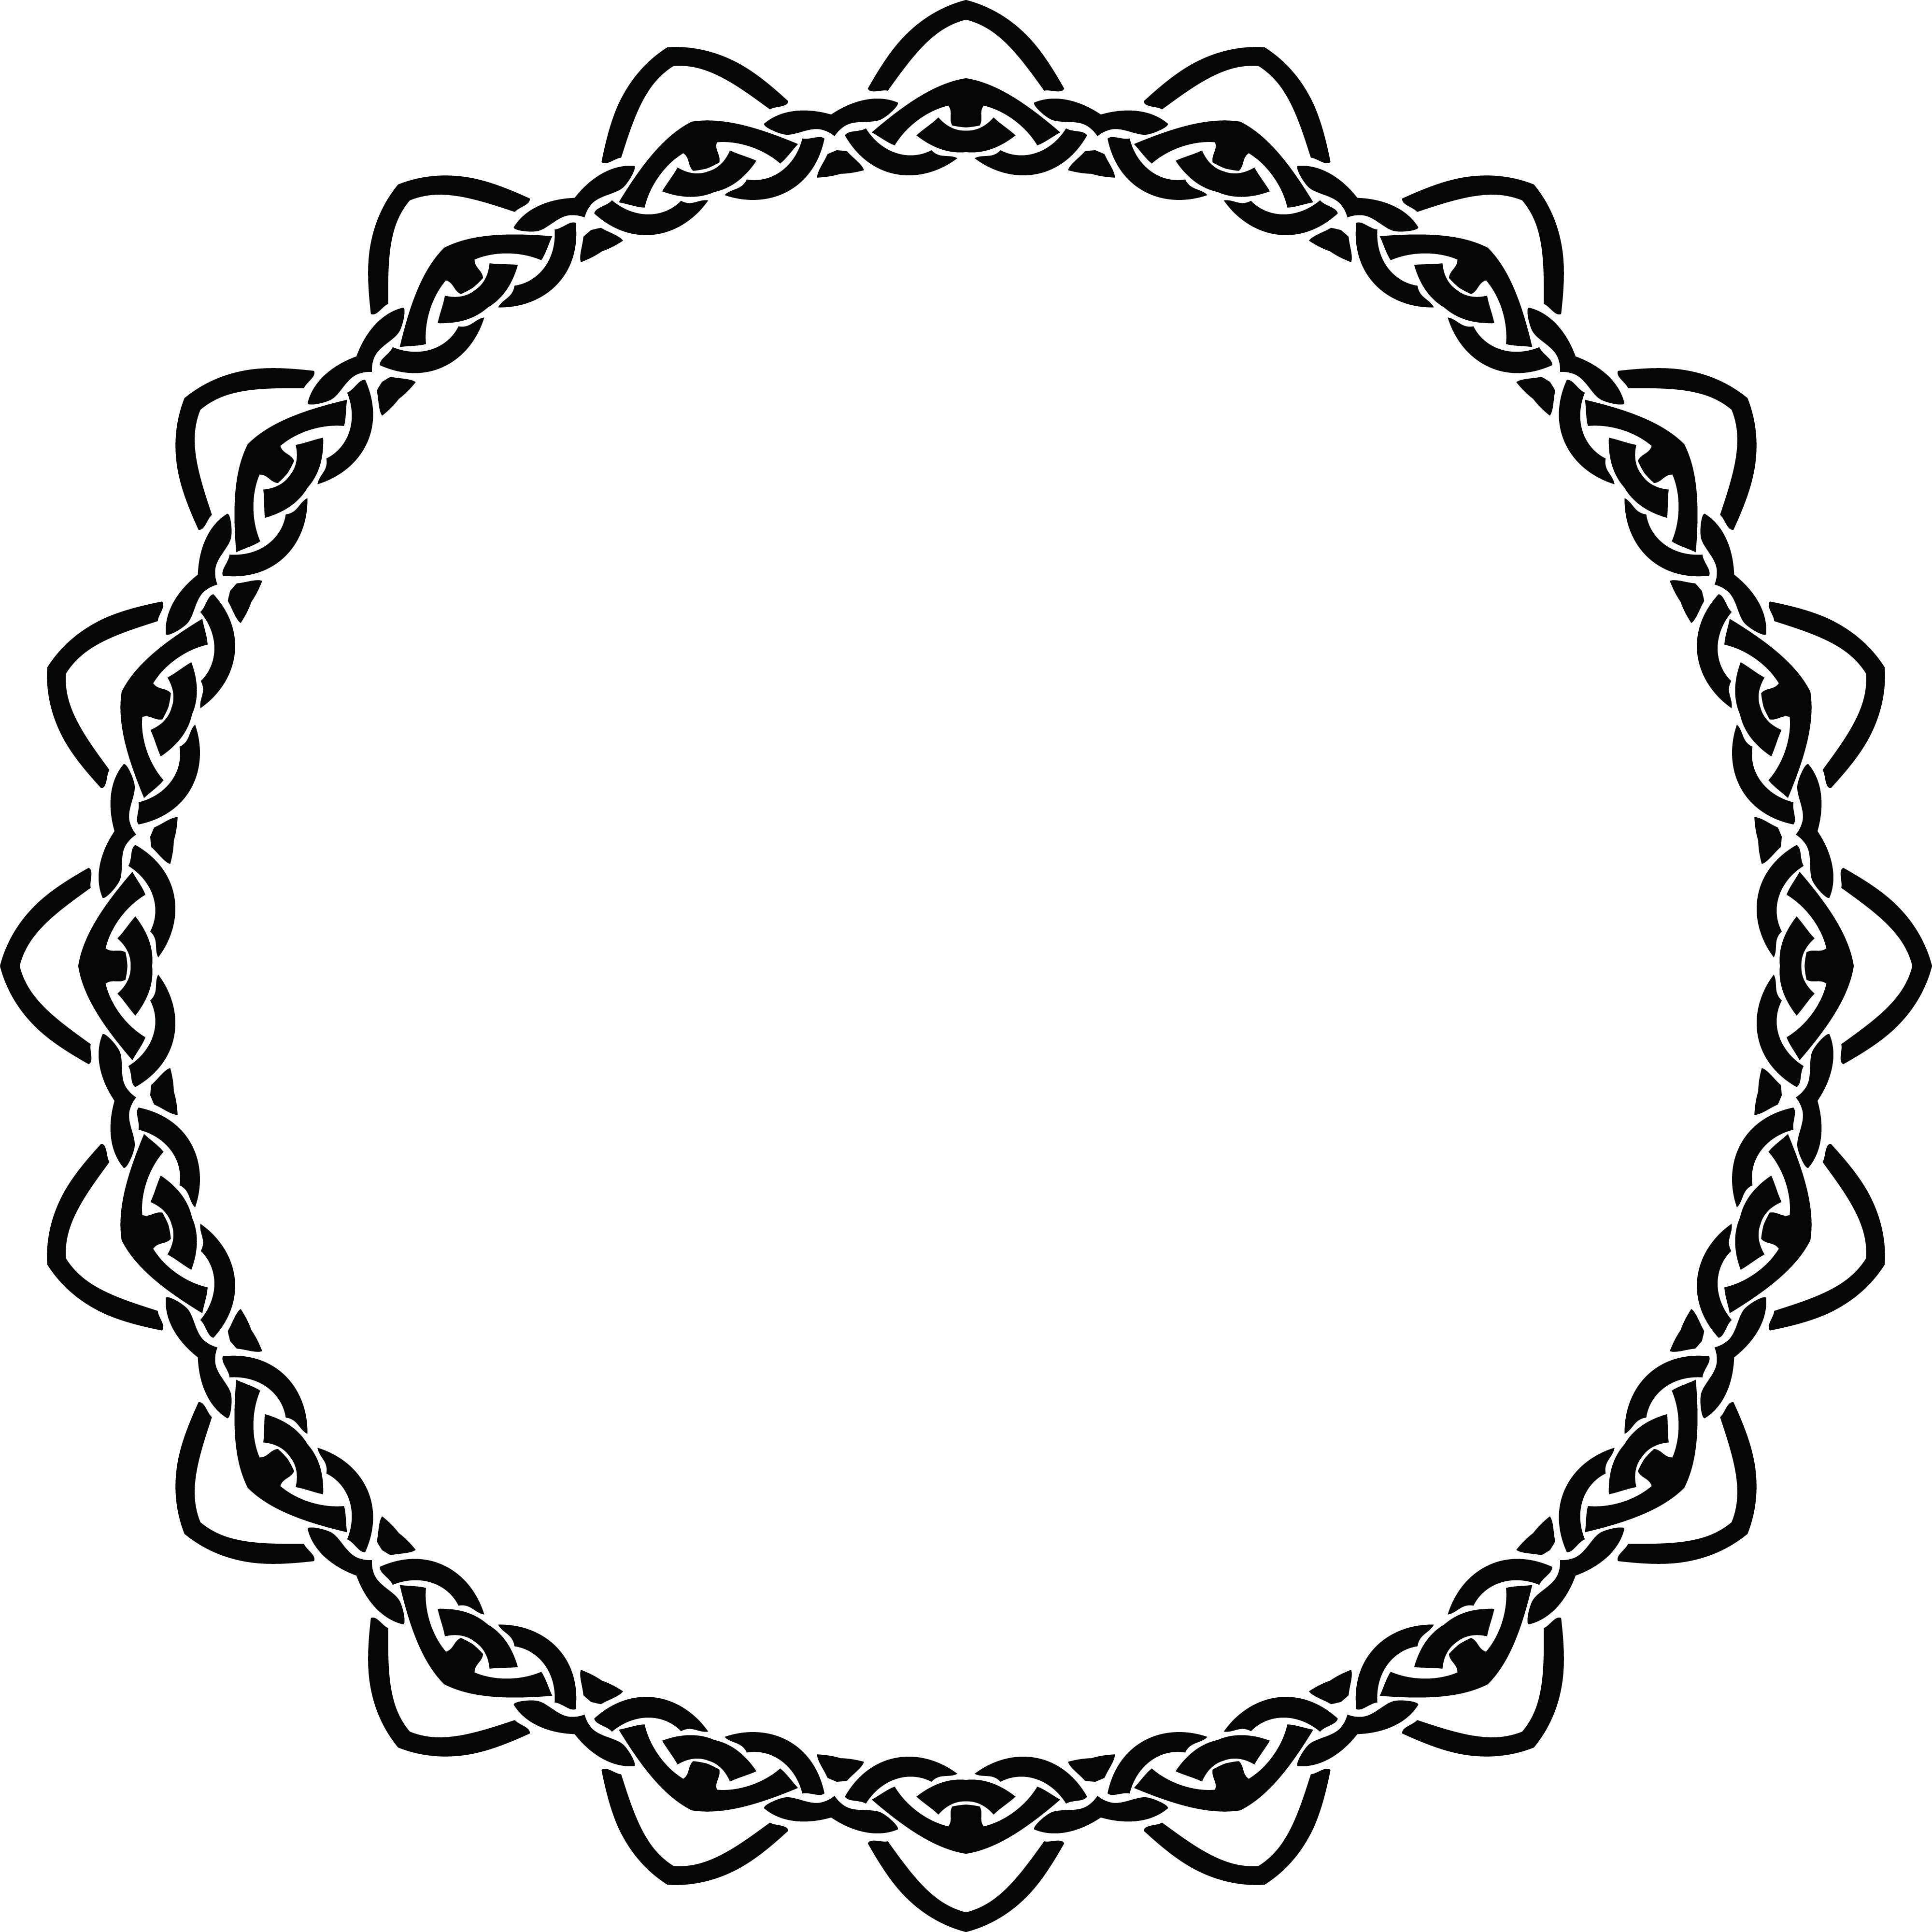 Free Clipart of a celtic round frame border design element in black.